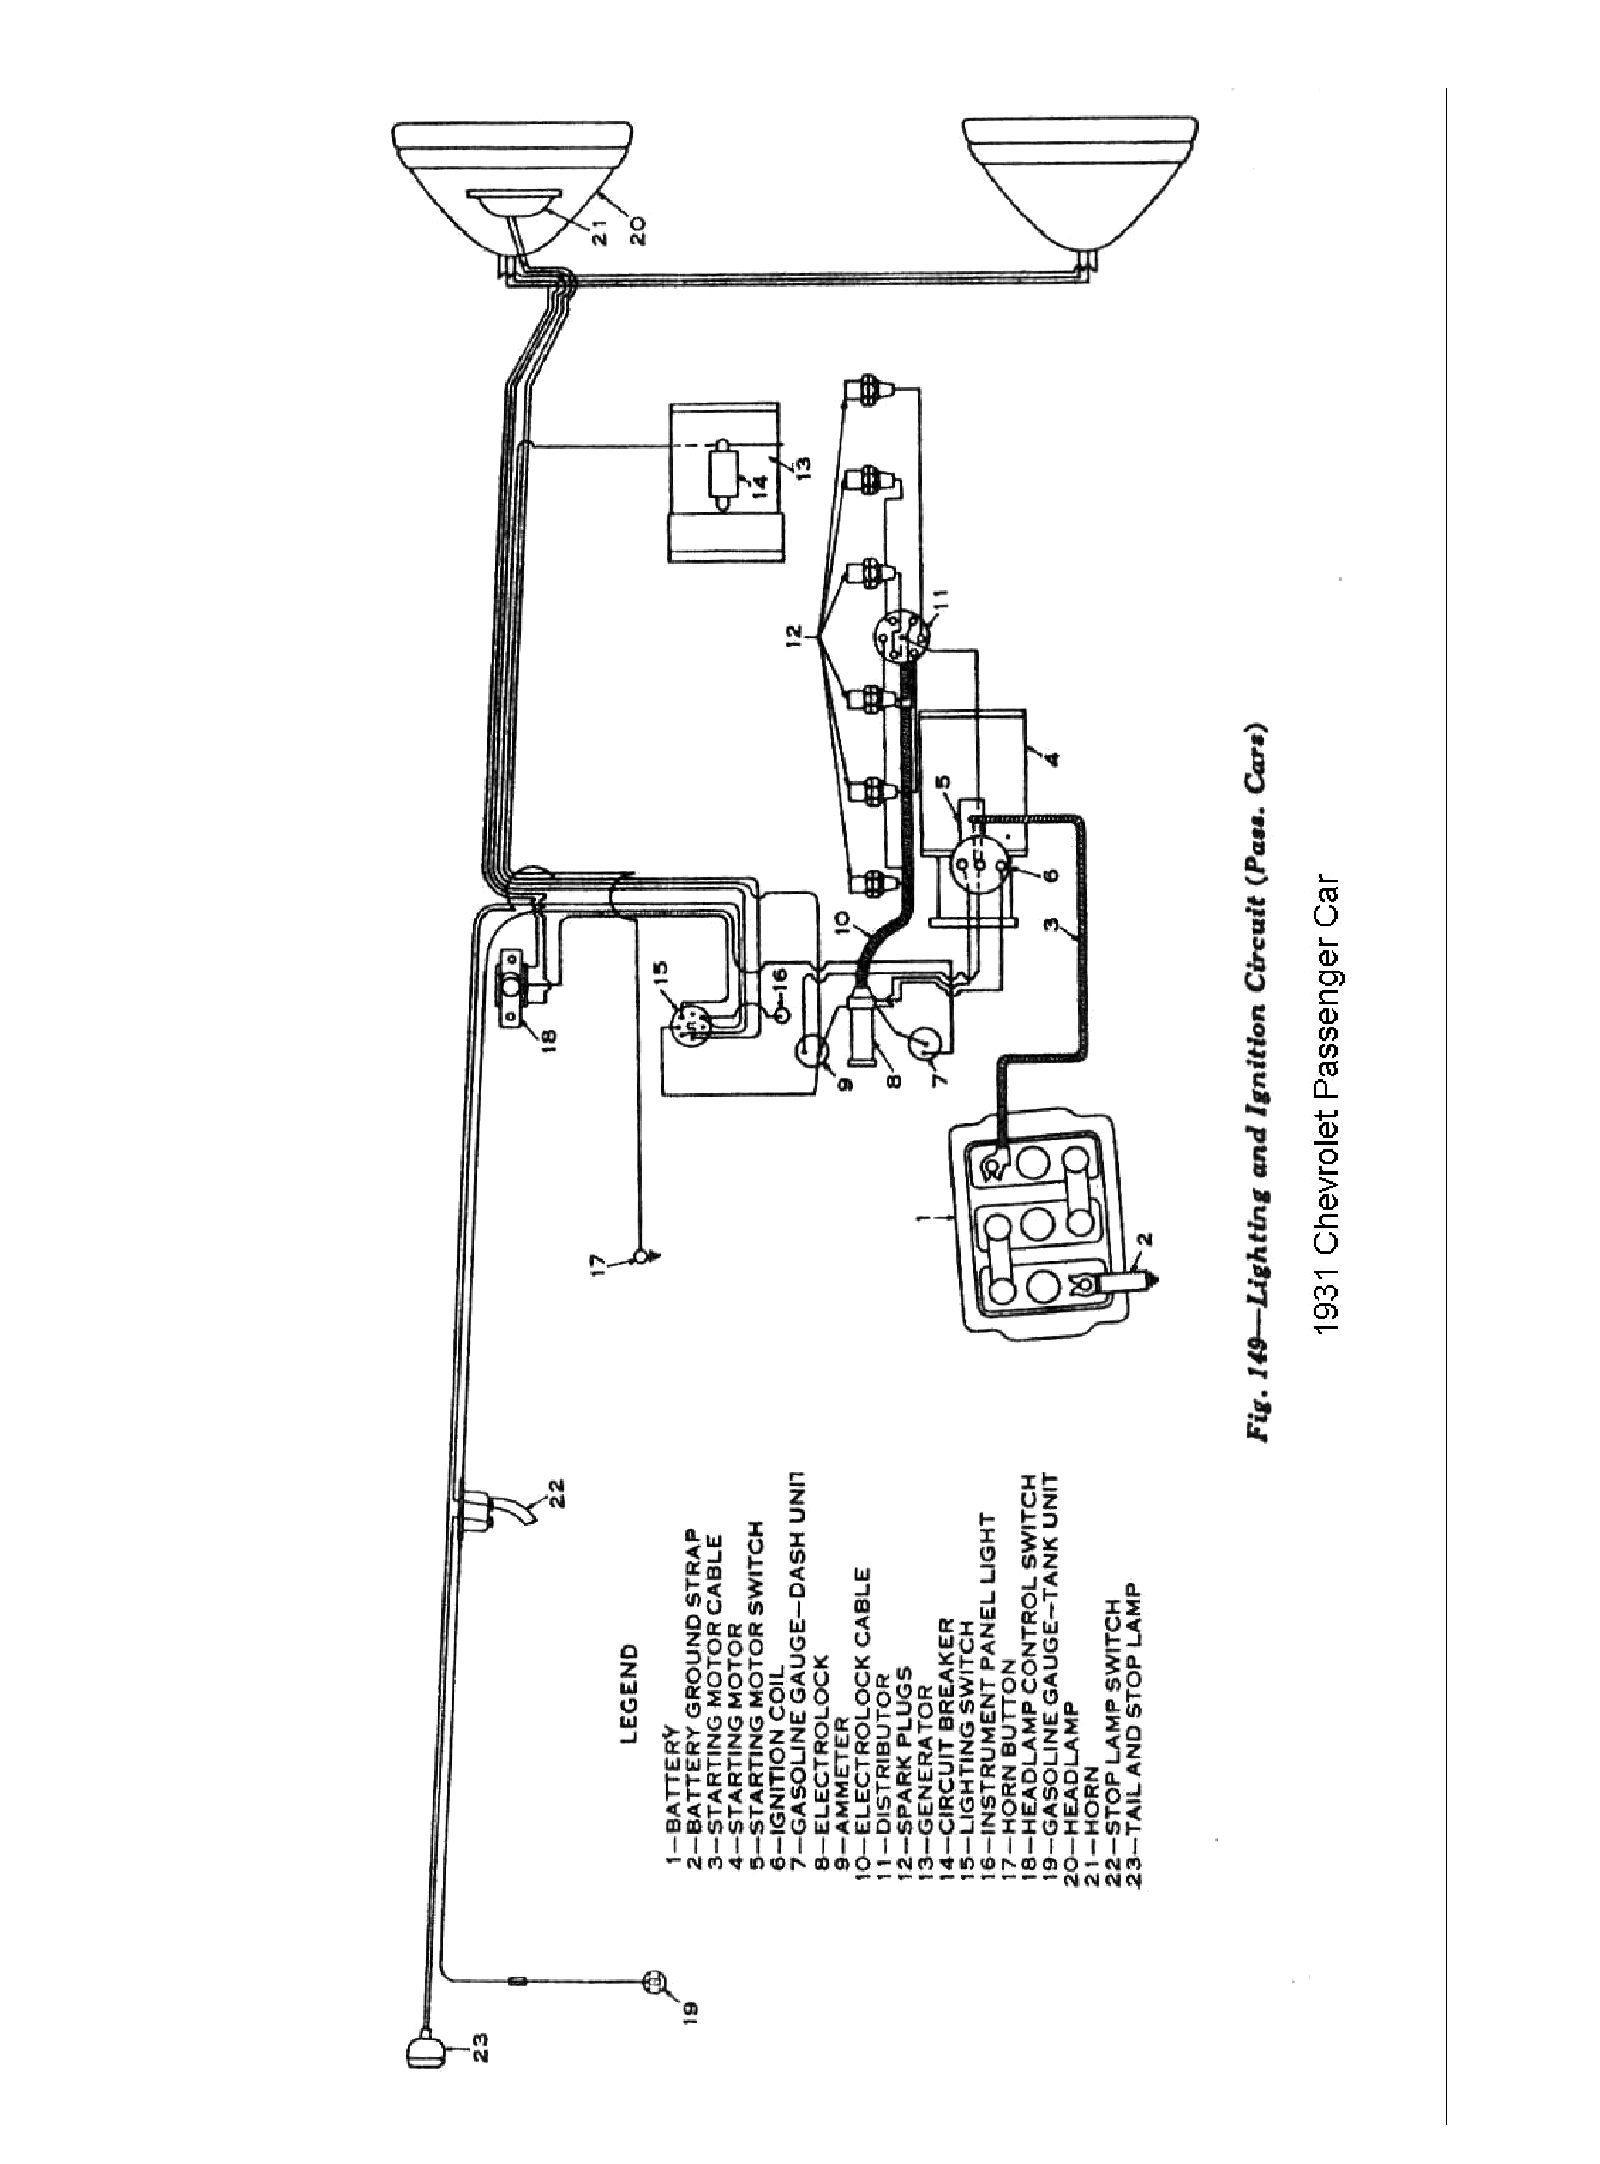 1931 Model A Wiring Diagram on 1932 chevrolet brake parts